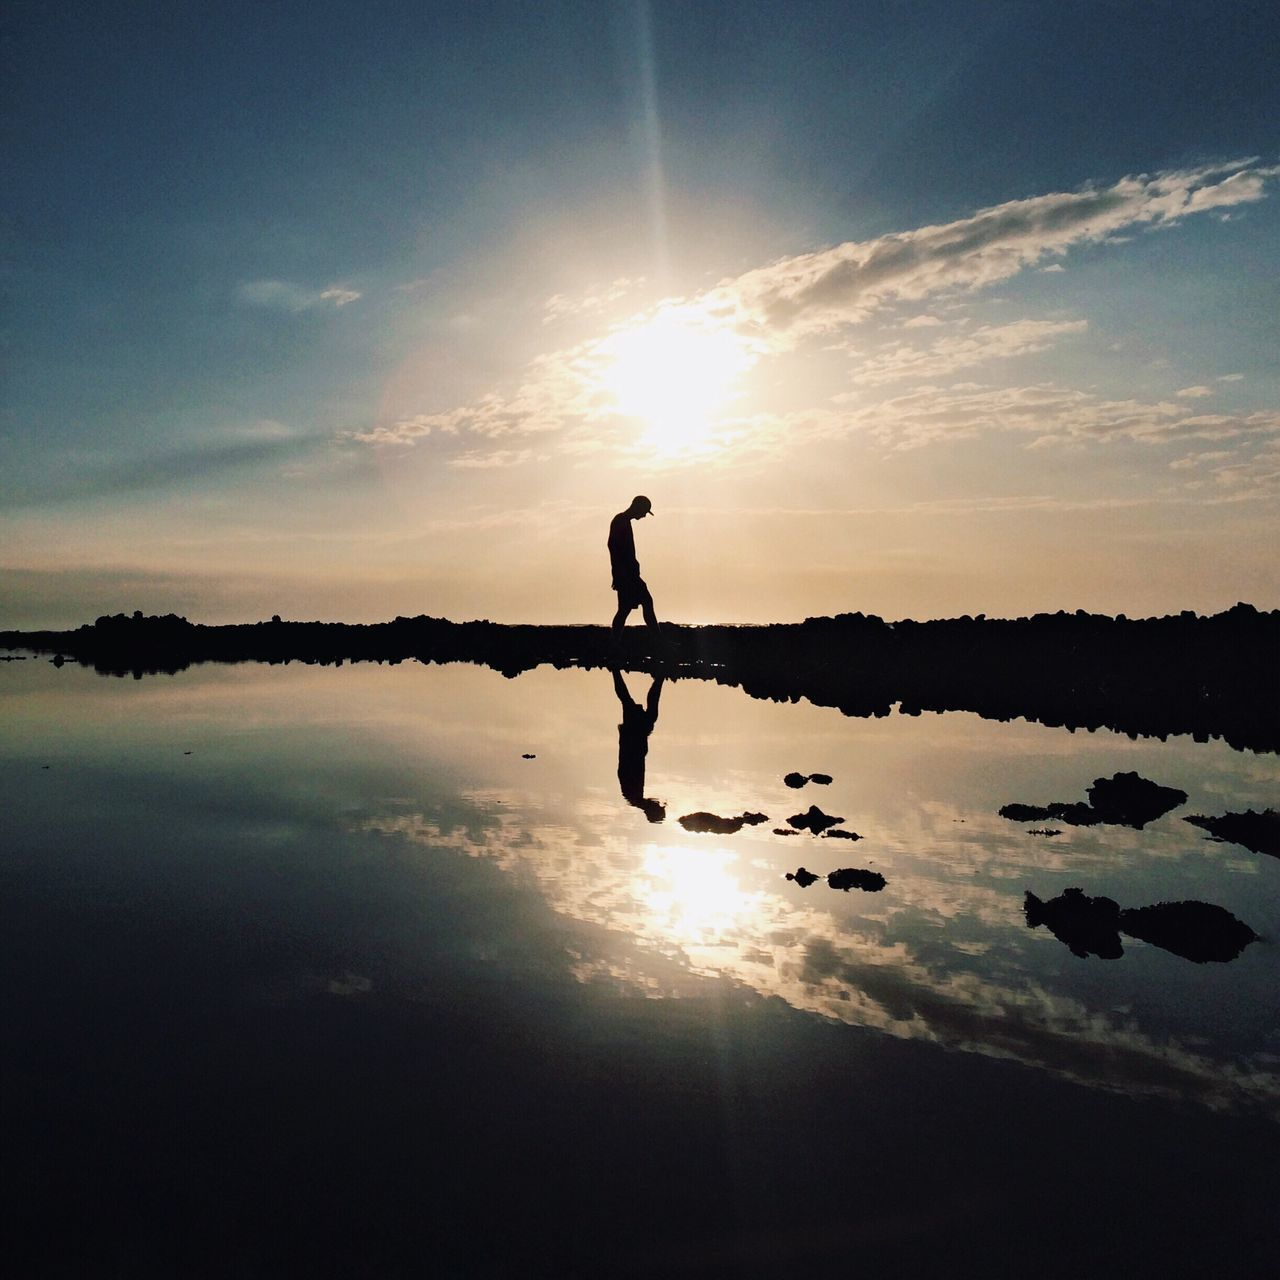 Silhouette Reflection Sunset Sun Water Sky Sunlight Lake Sunbeam Beauty In Nature Tranquil Scene Nature Tranquility Scenics Outdoors One Person Standing Balance Side View Cloud - Sky